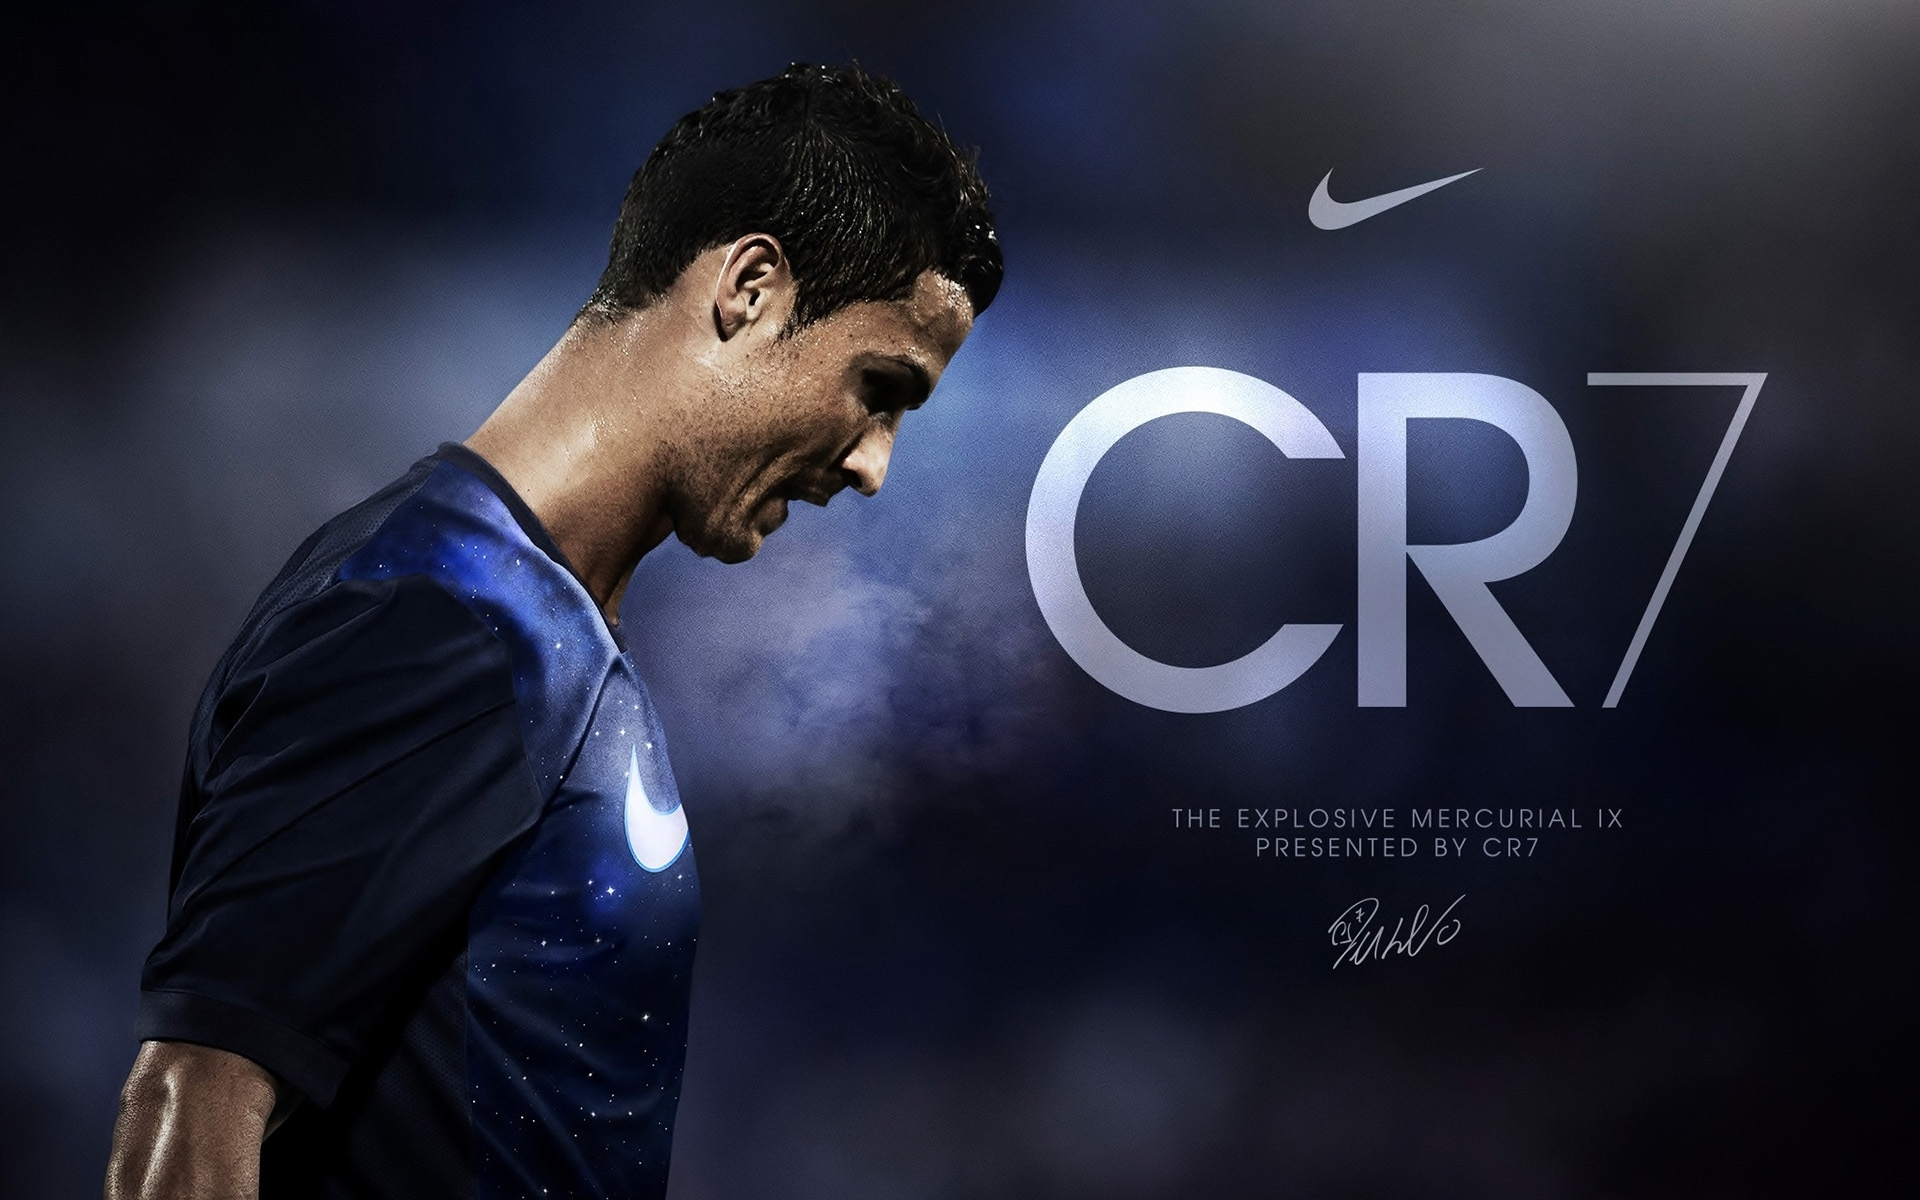 cristiano-ronaldo full hd wallpaper and background image | 1920x1200